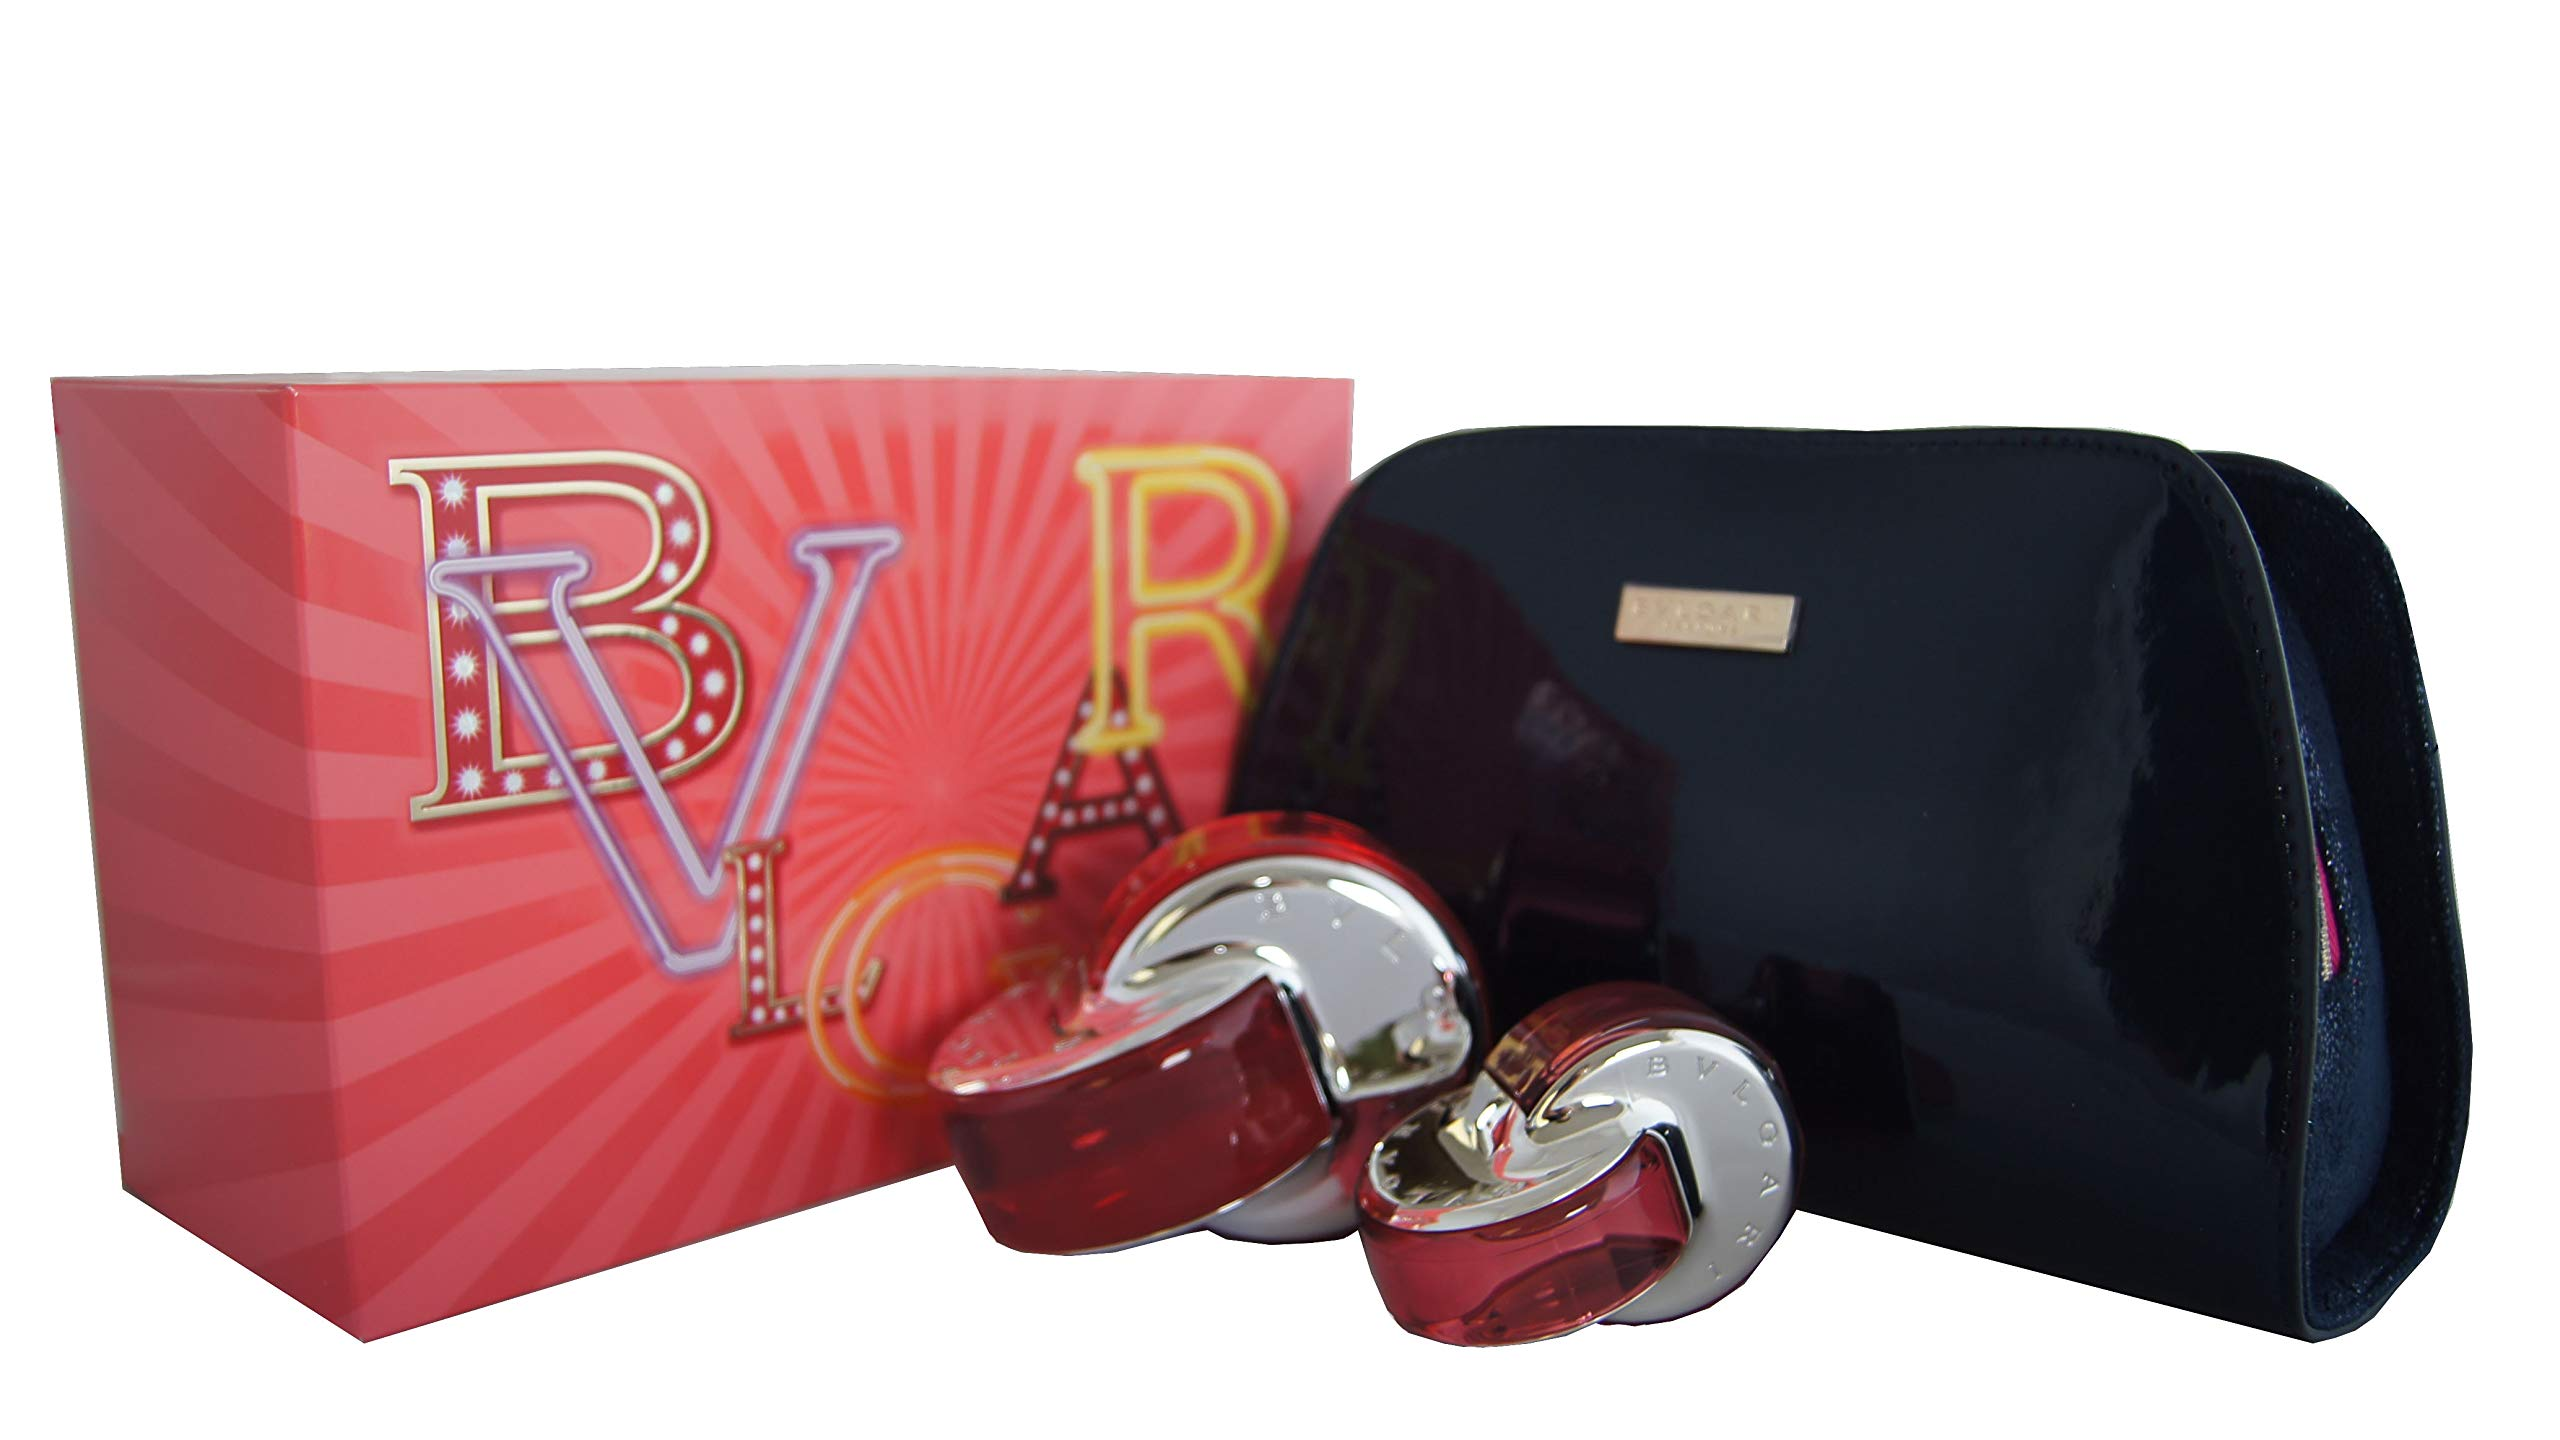 Bvlgari Omnia Coral 2 Piece Fragrance Gift Set for Women, 2.69 Ounce